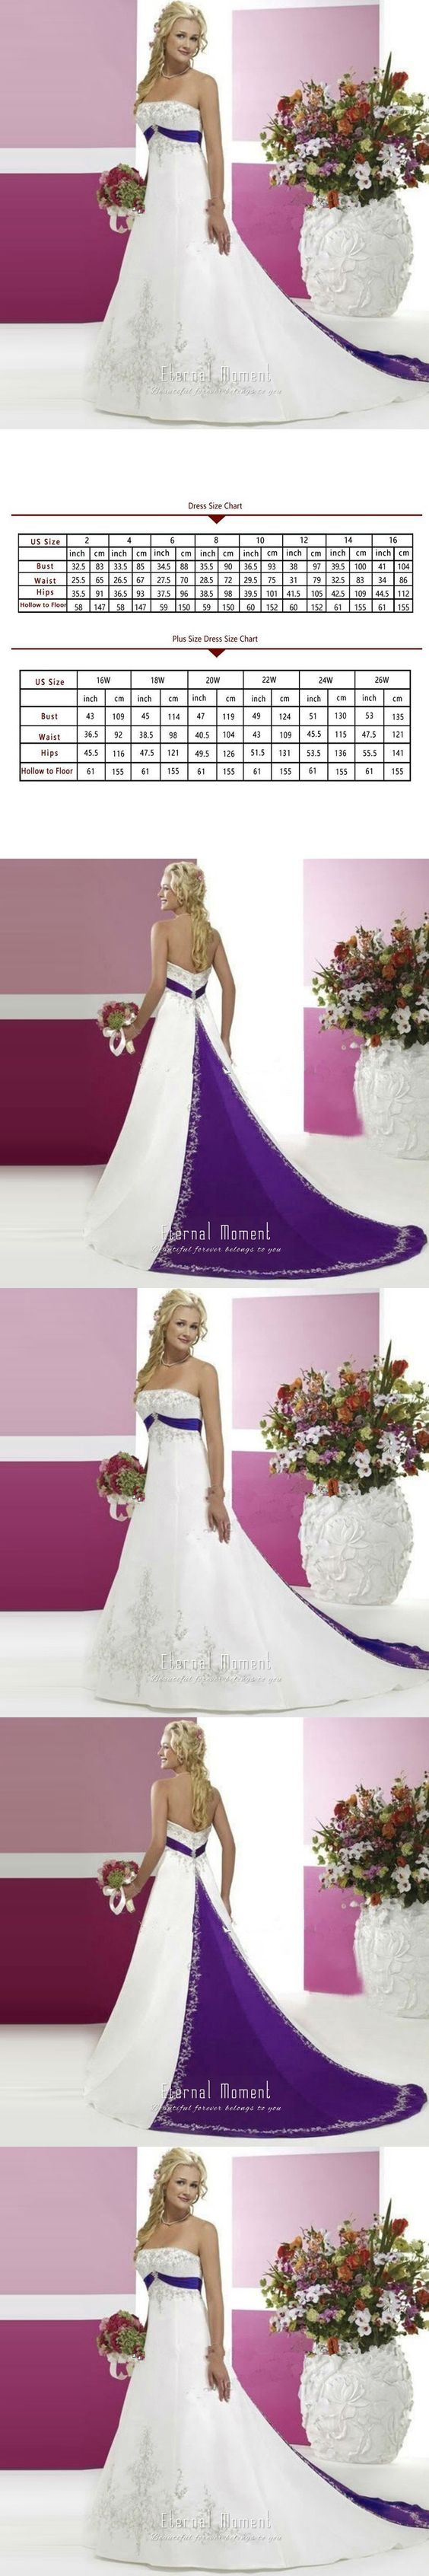 Sexy Strapless White And Purple Beaded Crystal A Line Wedding Dress 2016 trouwjurk robe de mariage $155